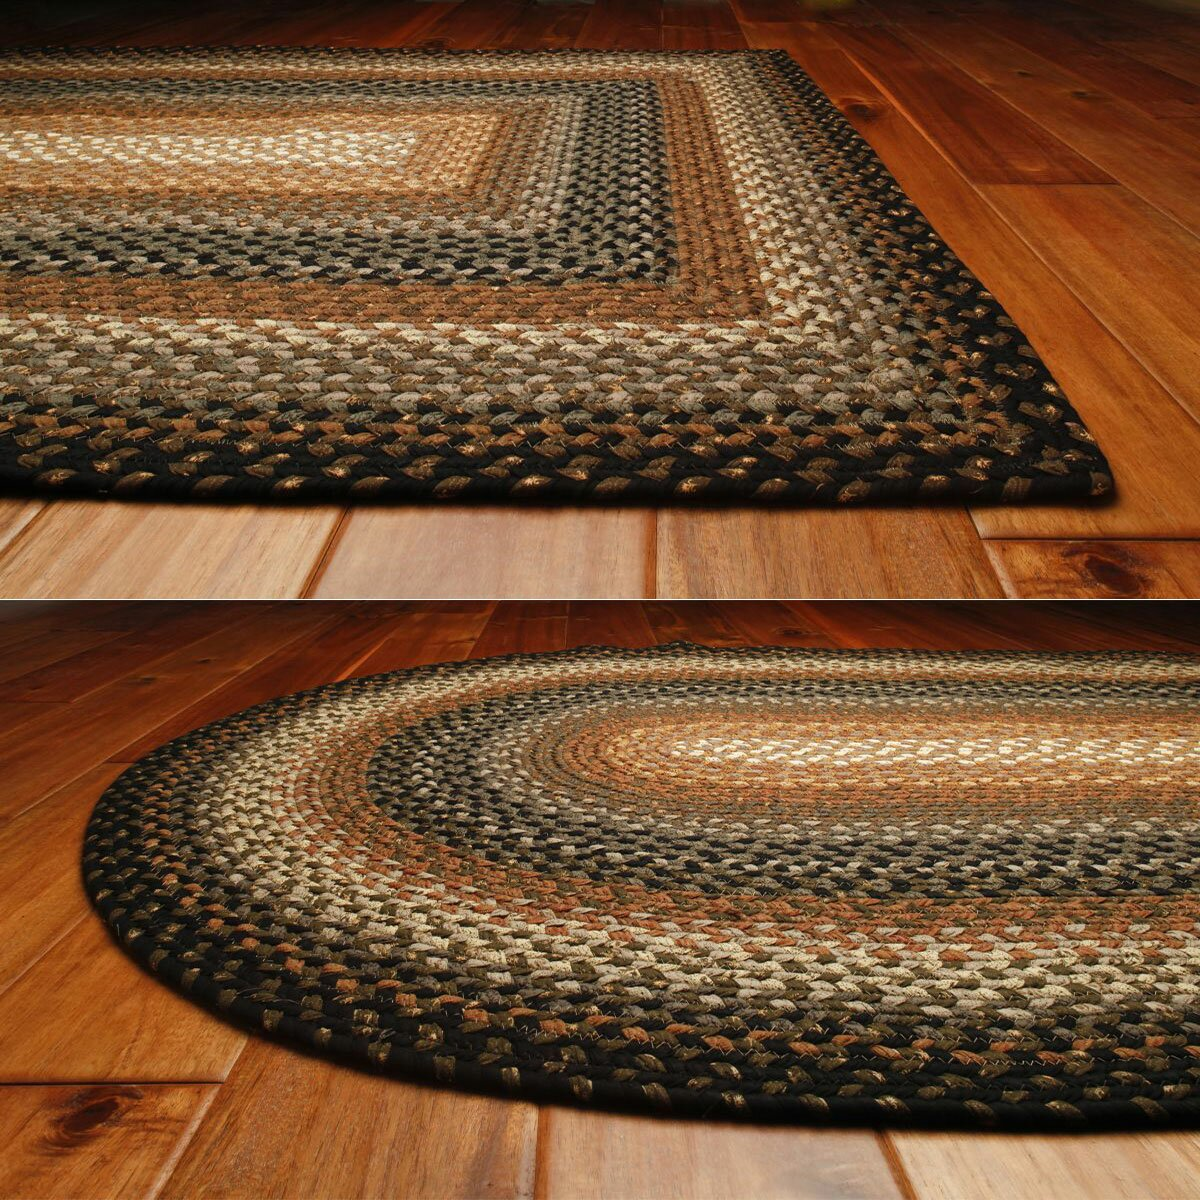 Homespice decor cotton braided cocoa bean area rug reviews wayfair - Rugs and home decor decor ...